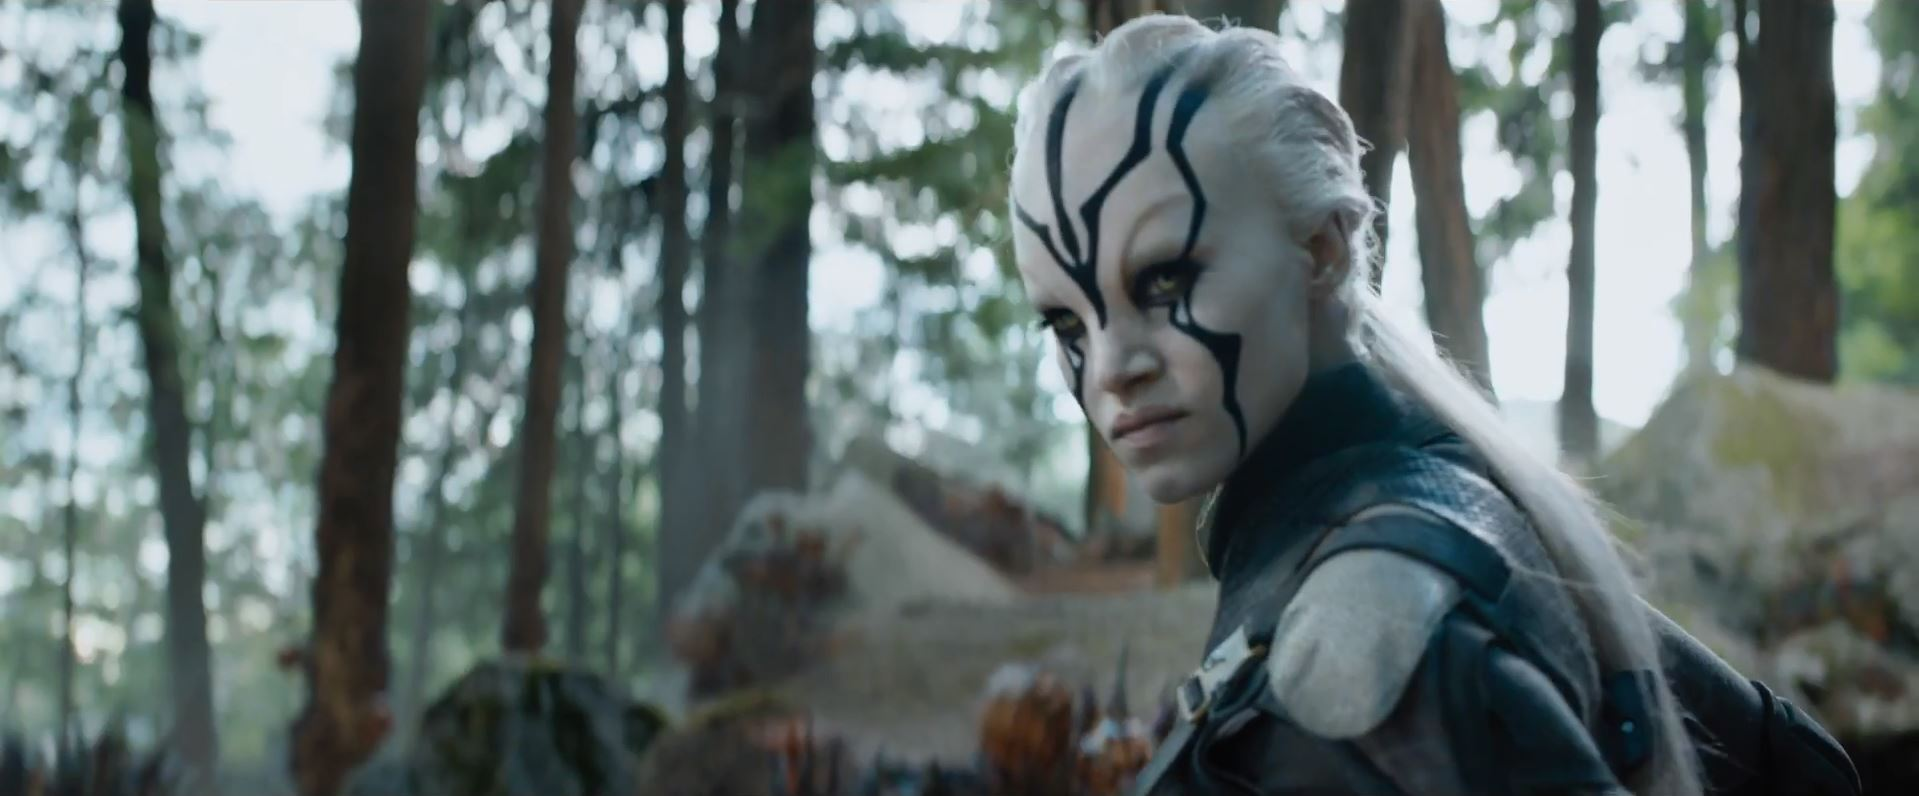 First trailer for Star Trek Beyond. Sofia Boutella